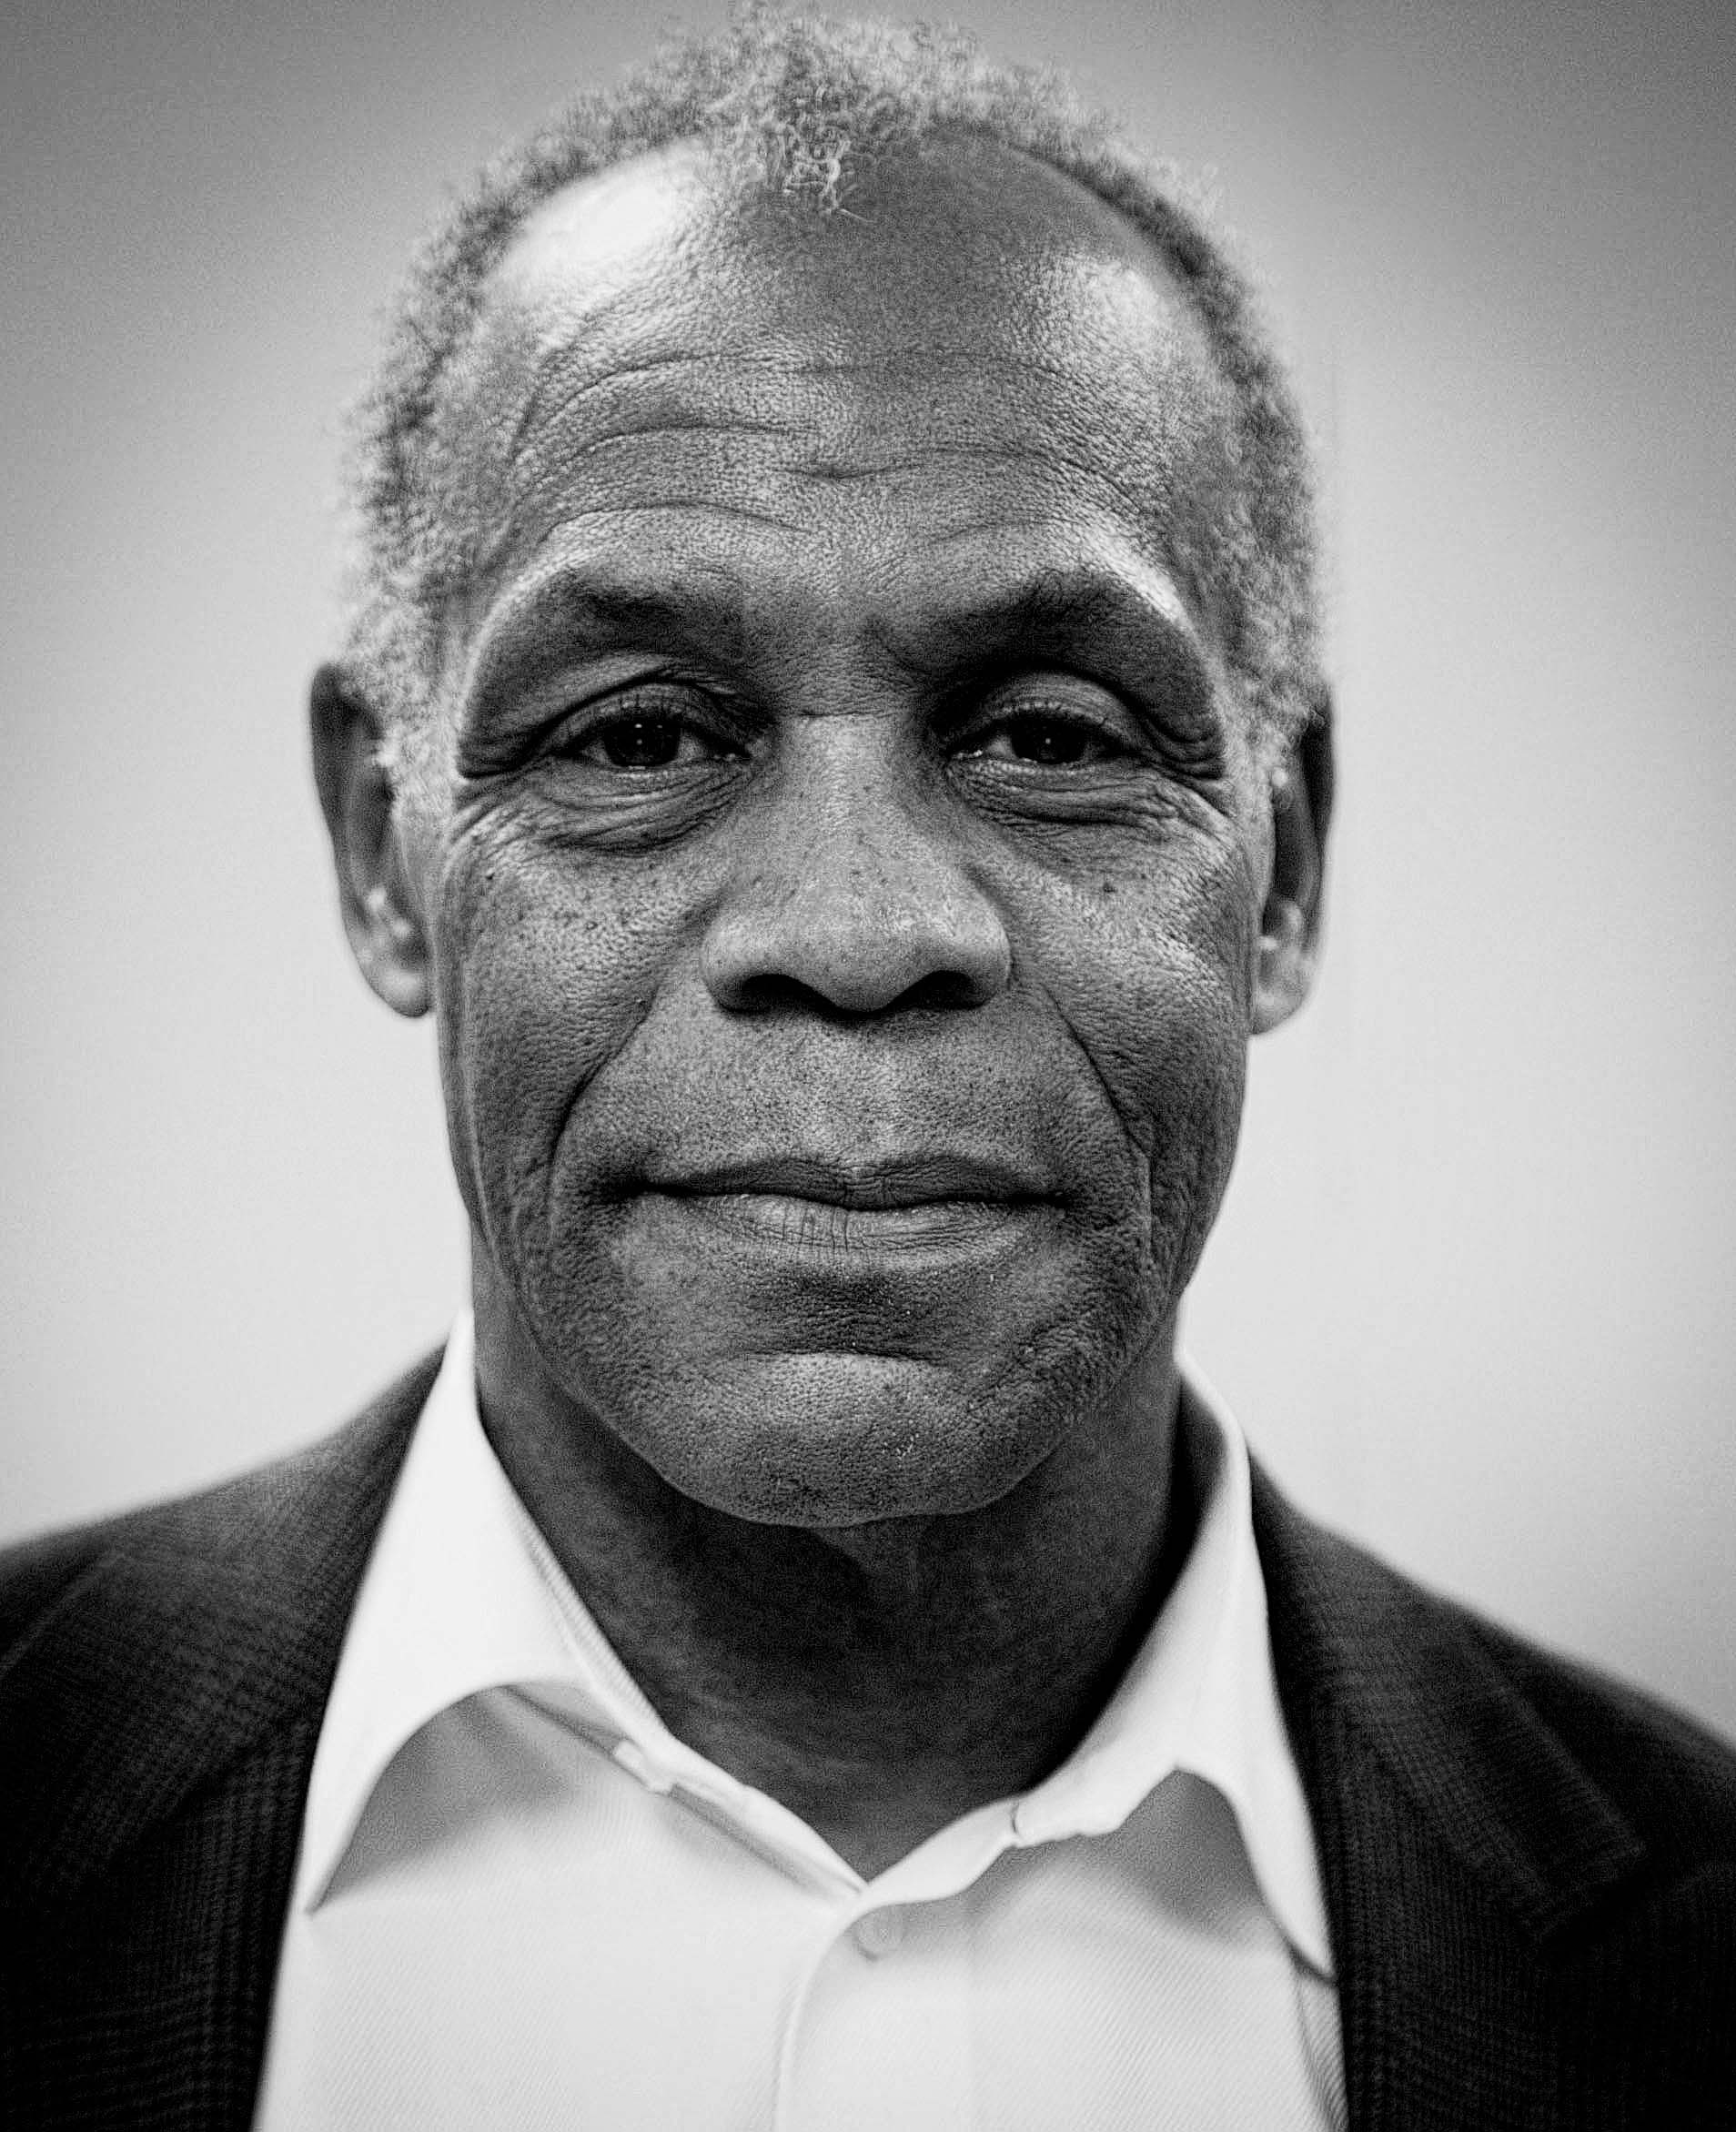 Caption: Danny Glover